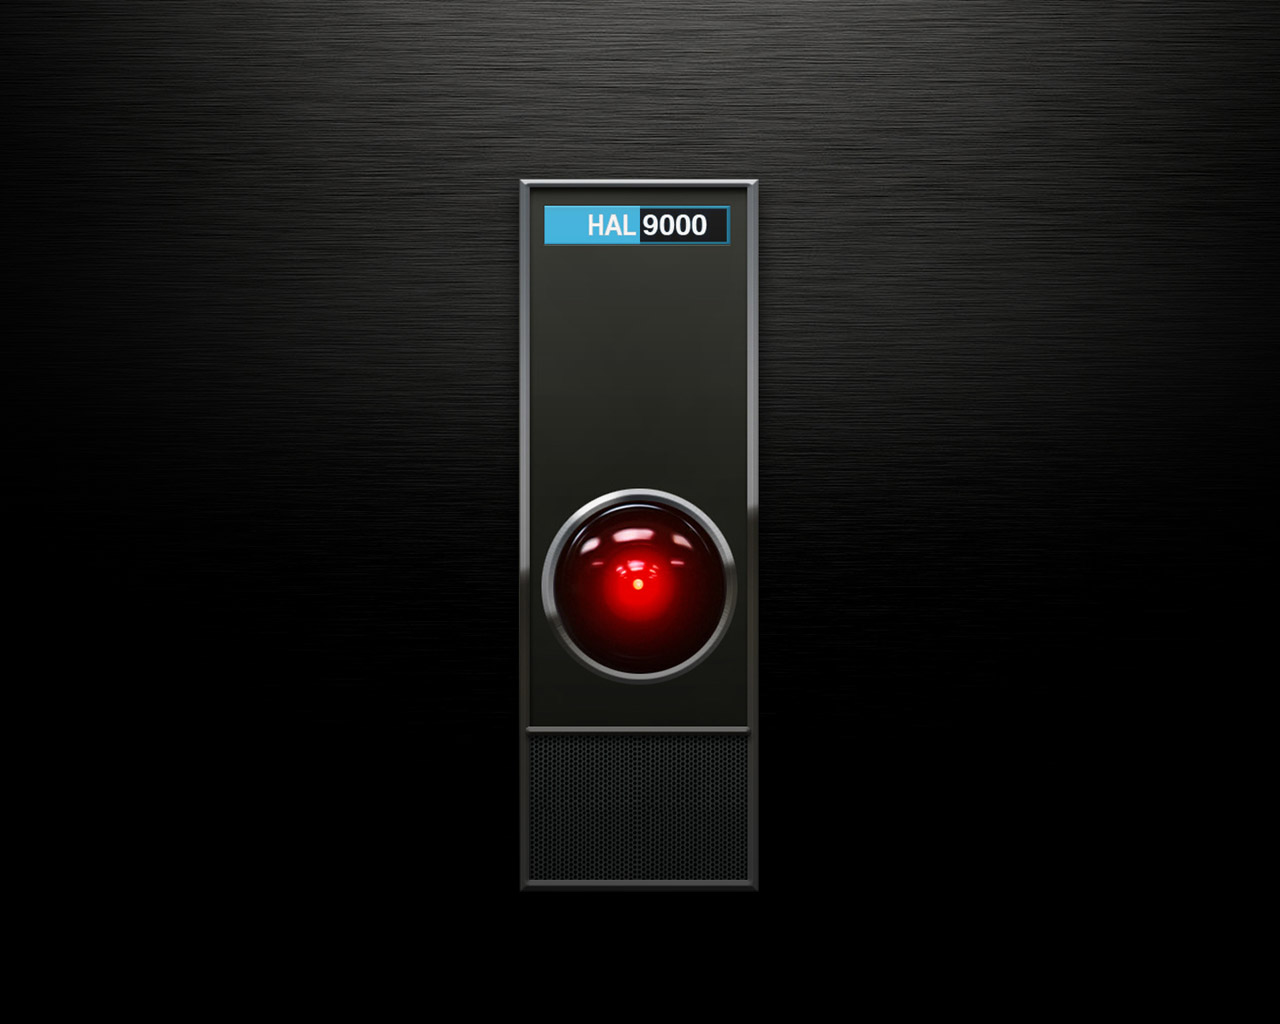 http://vignette4.wikia.nocookie.net/2001/images/1/18/Hal9000.jpg/revision/latest?cb=20091004150956